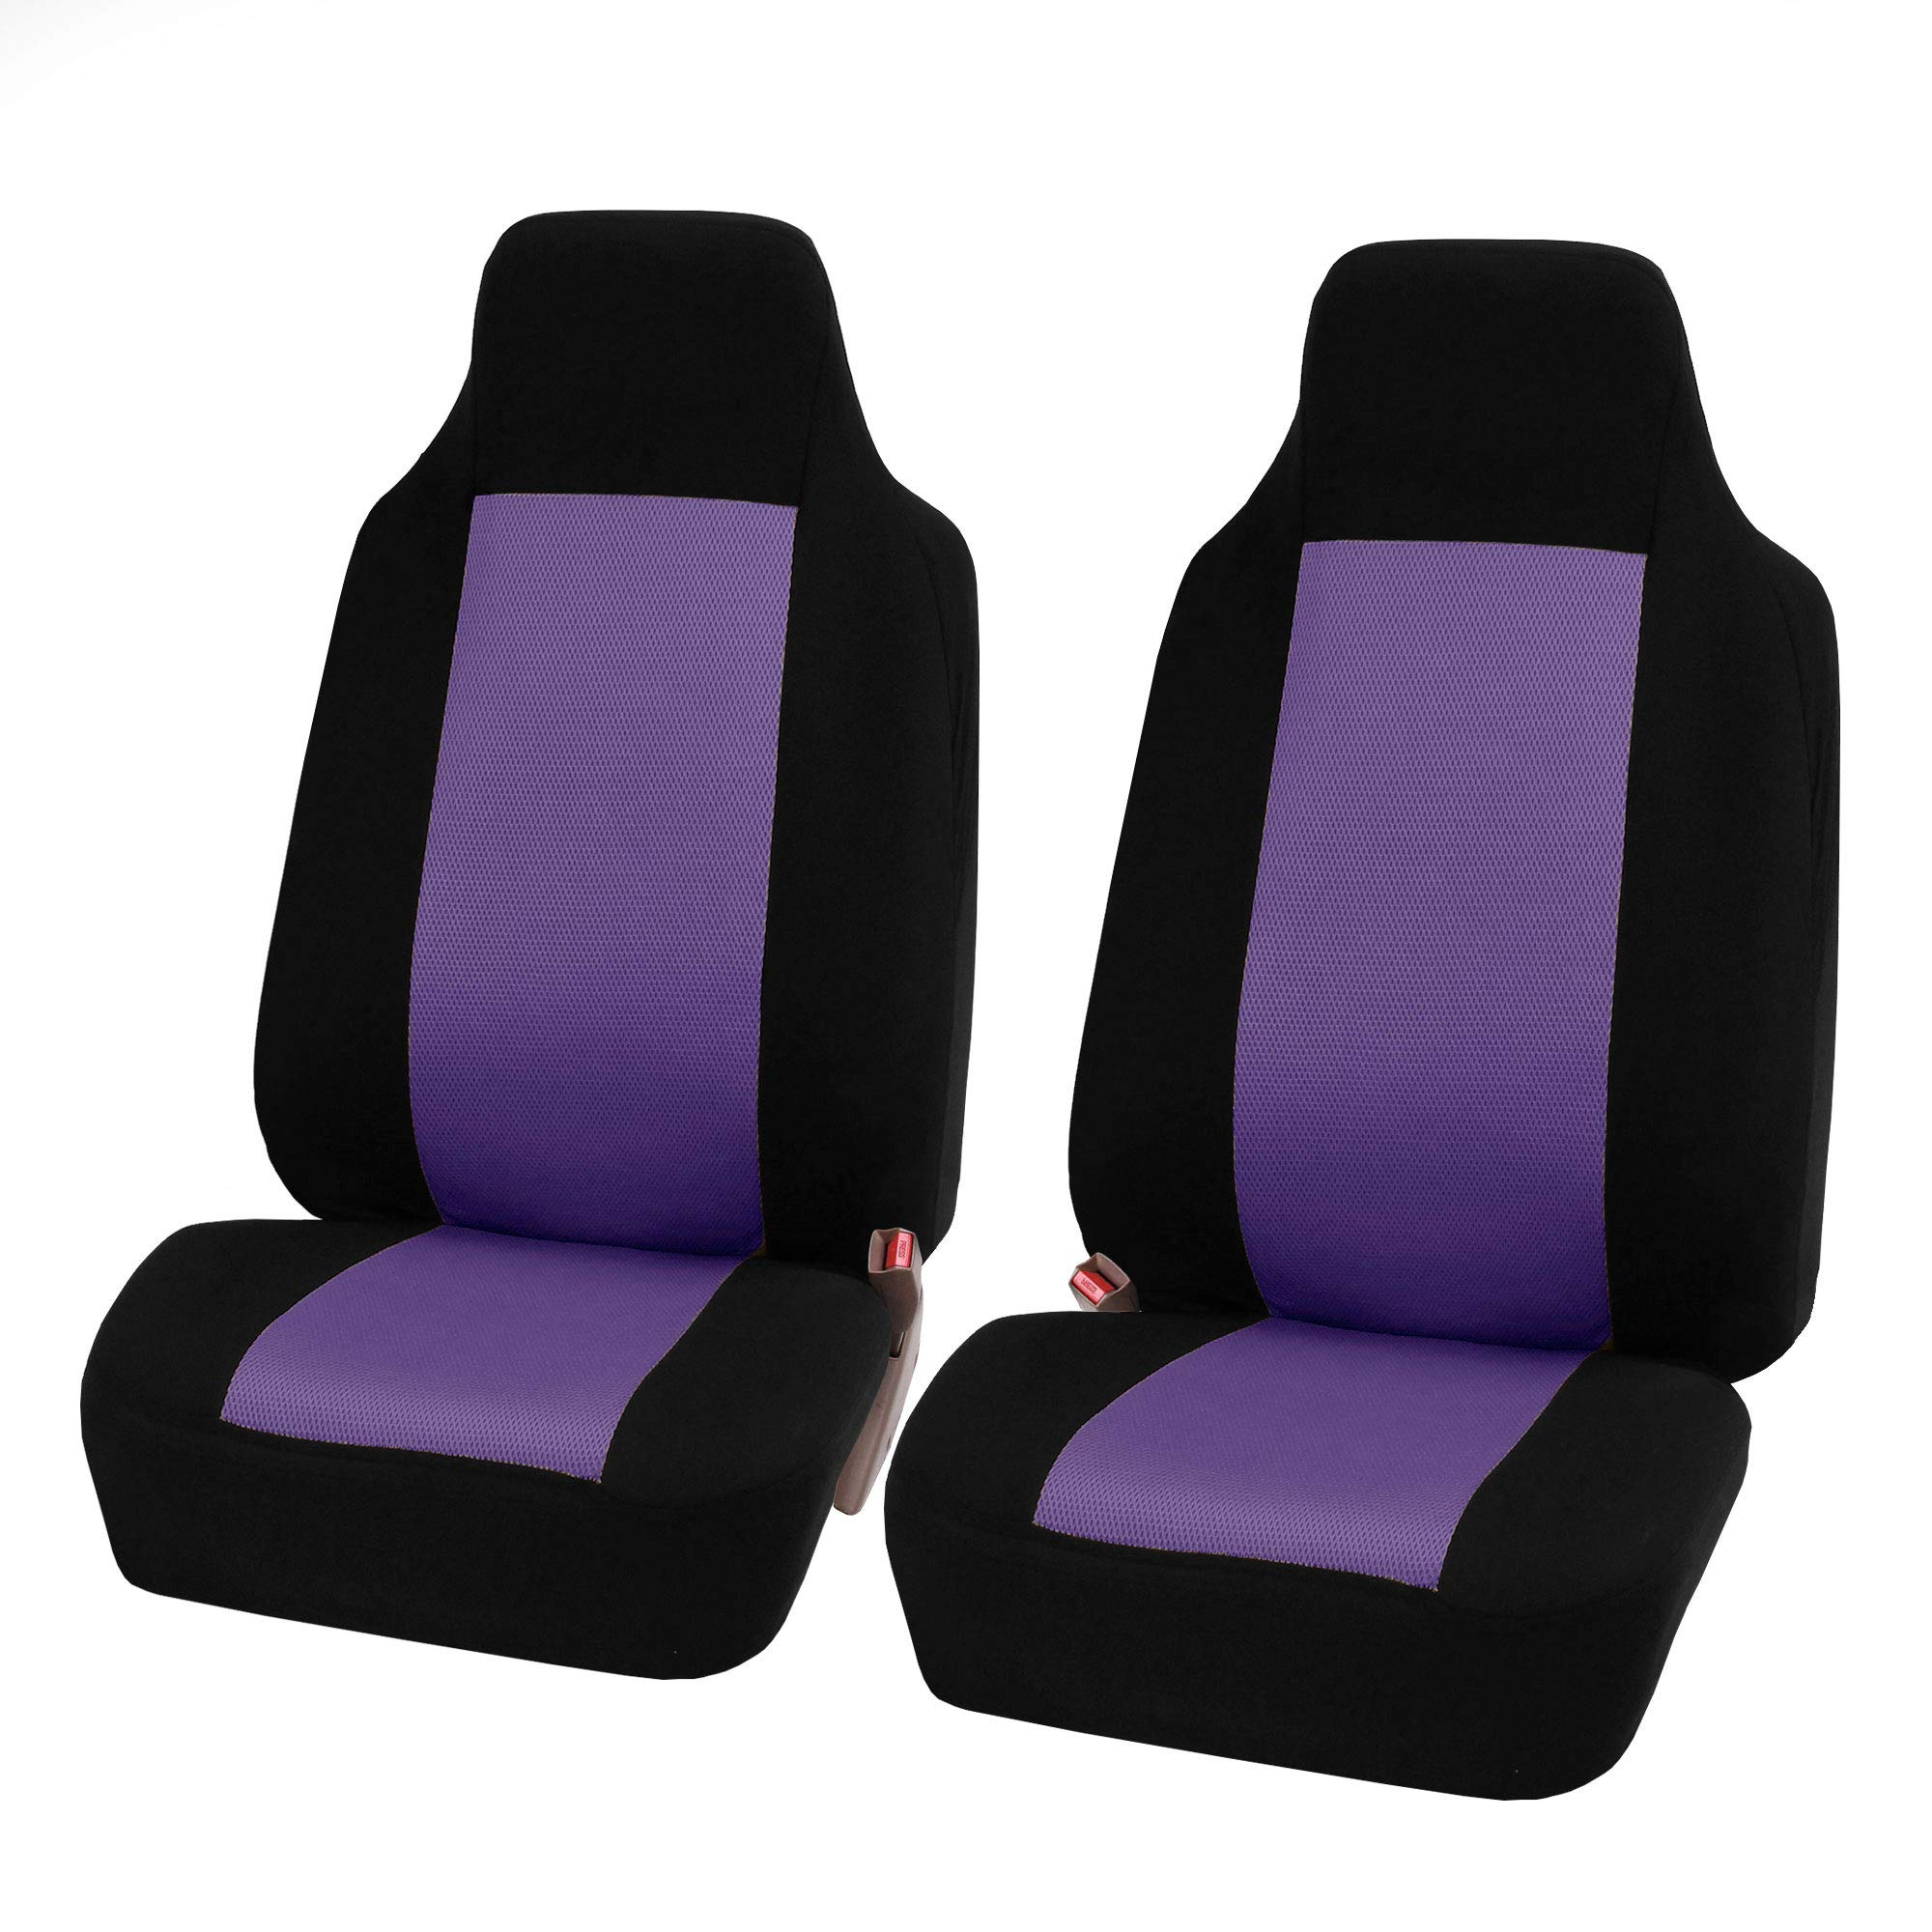 FH Group FB102102 Classic Cloth Car Pair Set Seat Covers Purple/Black- Fit Most Car, Truck, SUV, or Van by FH Group